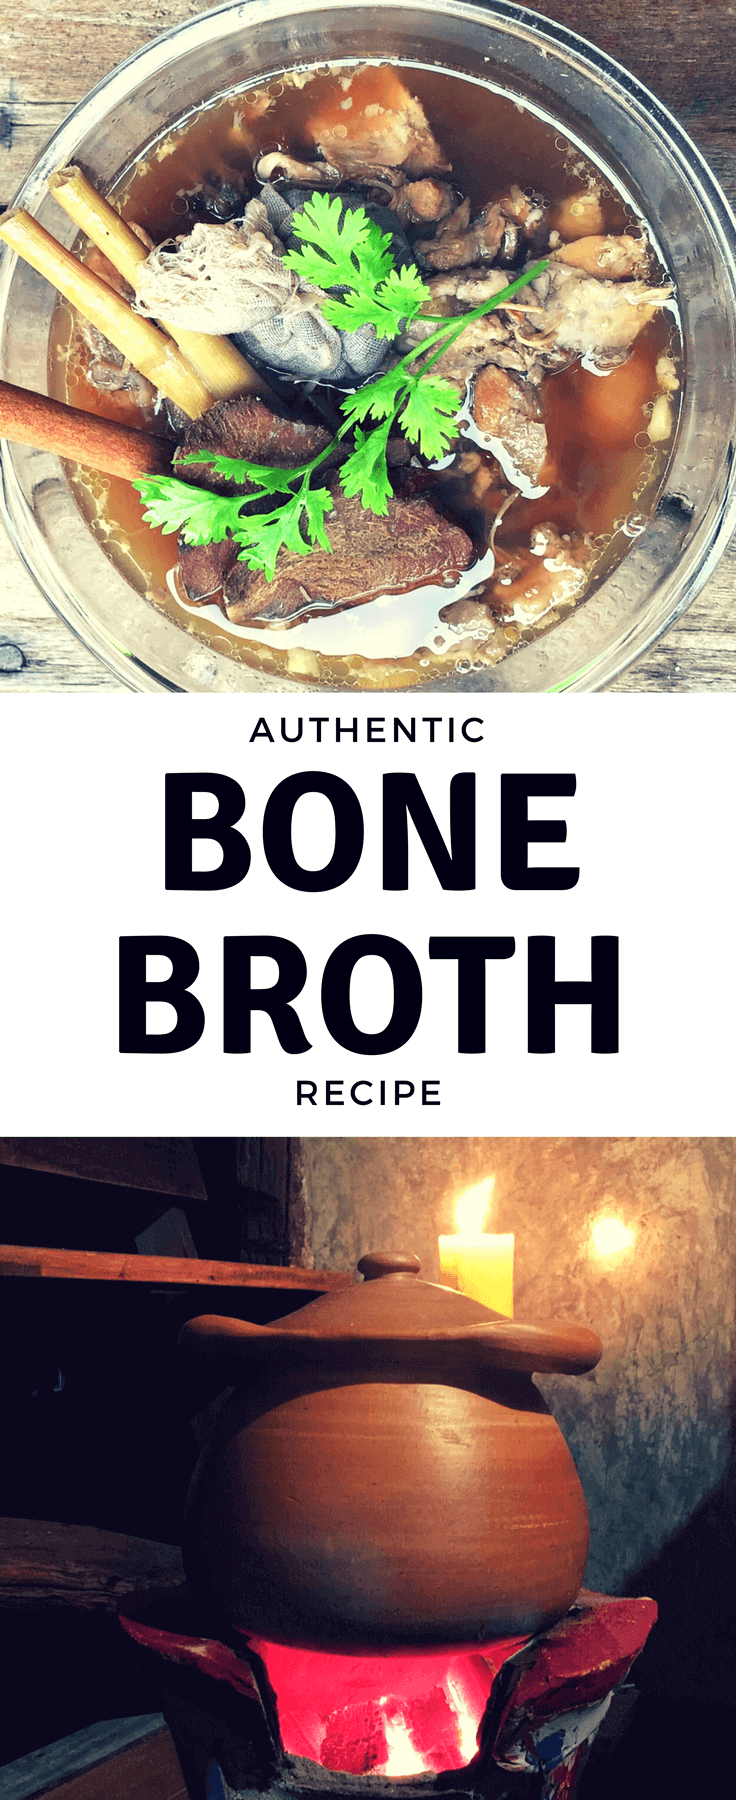 Bone Broth recipe pinterest